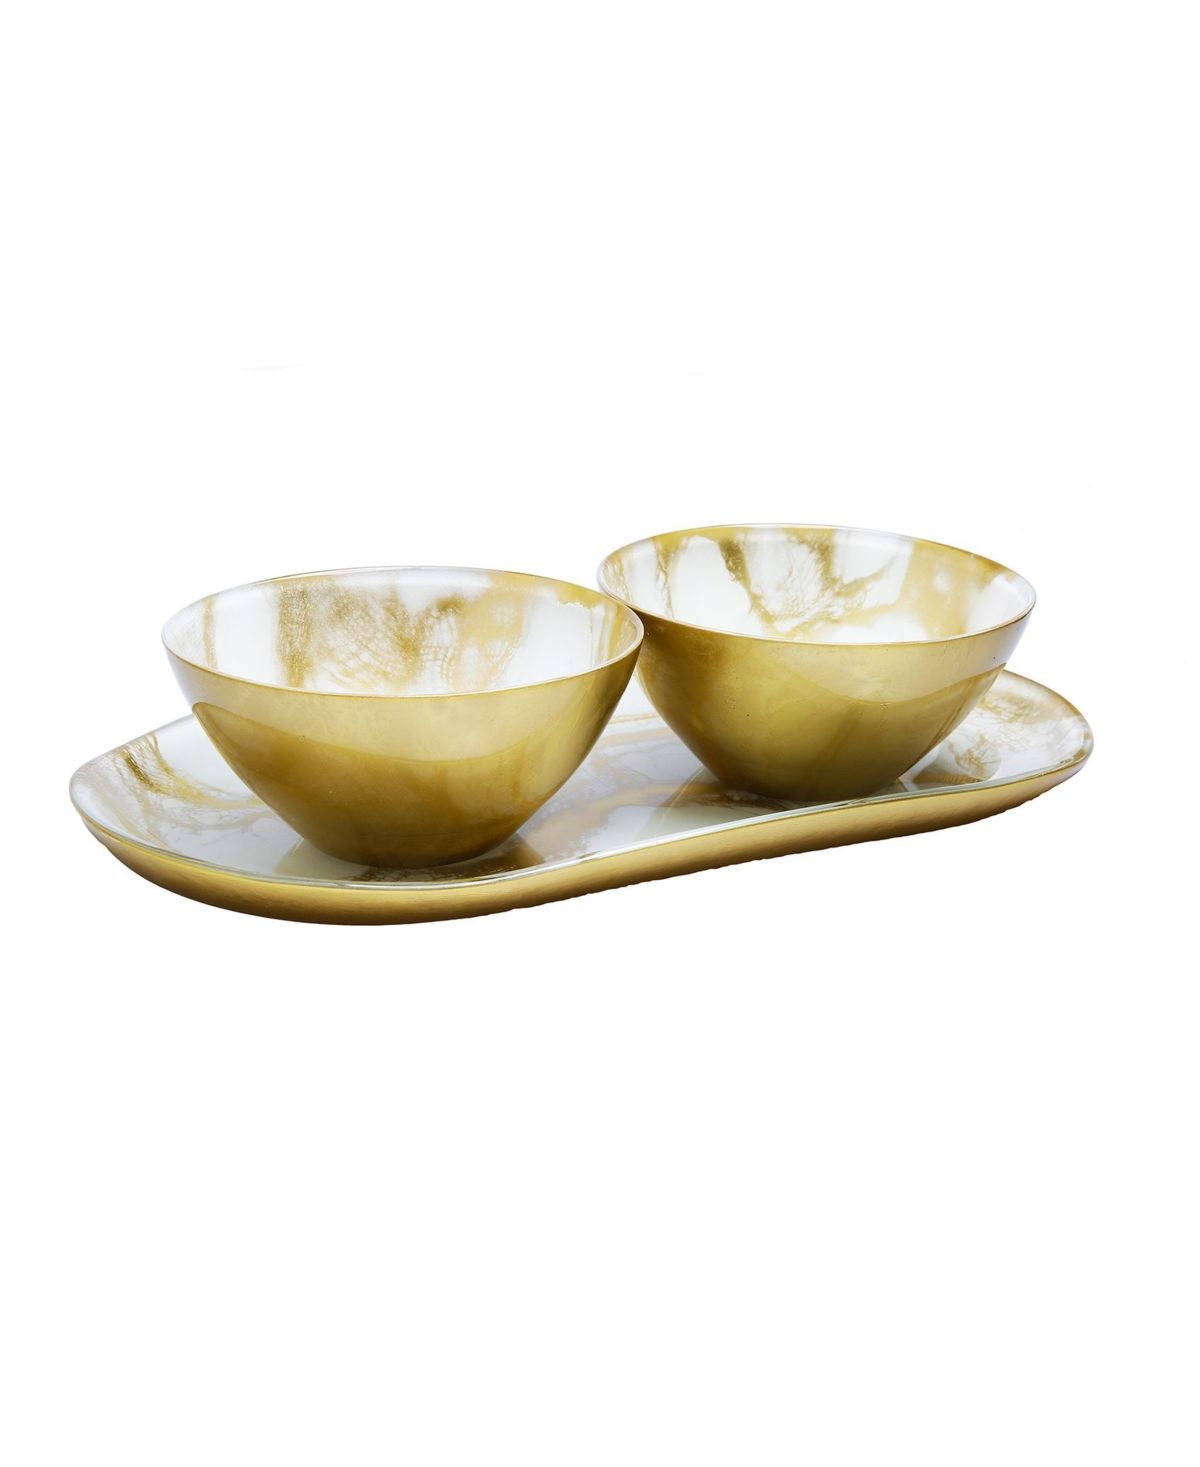 Classic Touch Marbleized 2 Bowl Relish Dish Reviews Vases Home Decor Macy S Gold Marble Decorative Bowls Classic